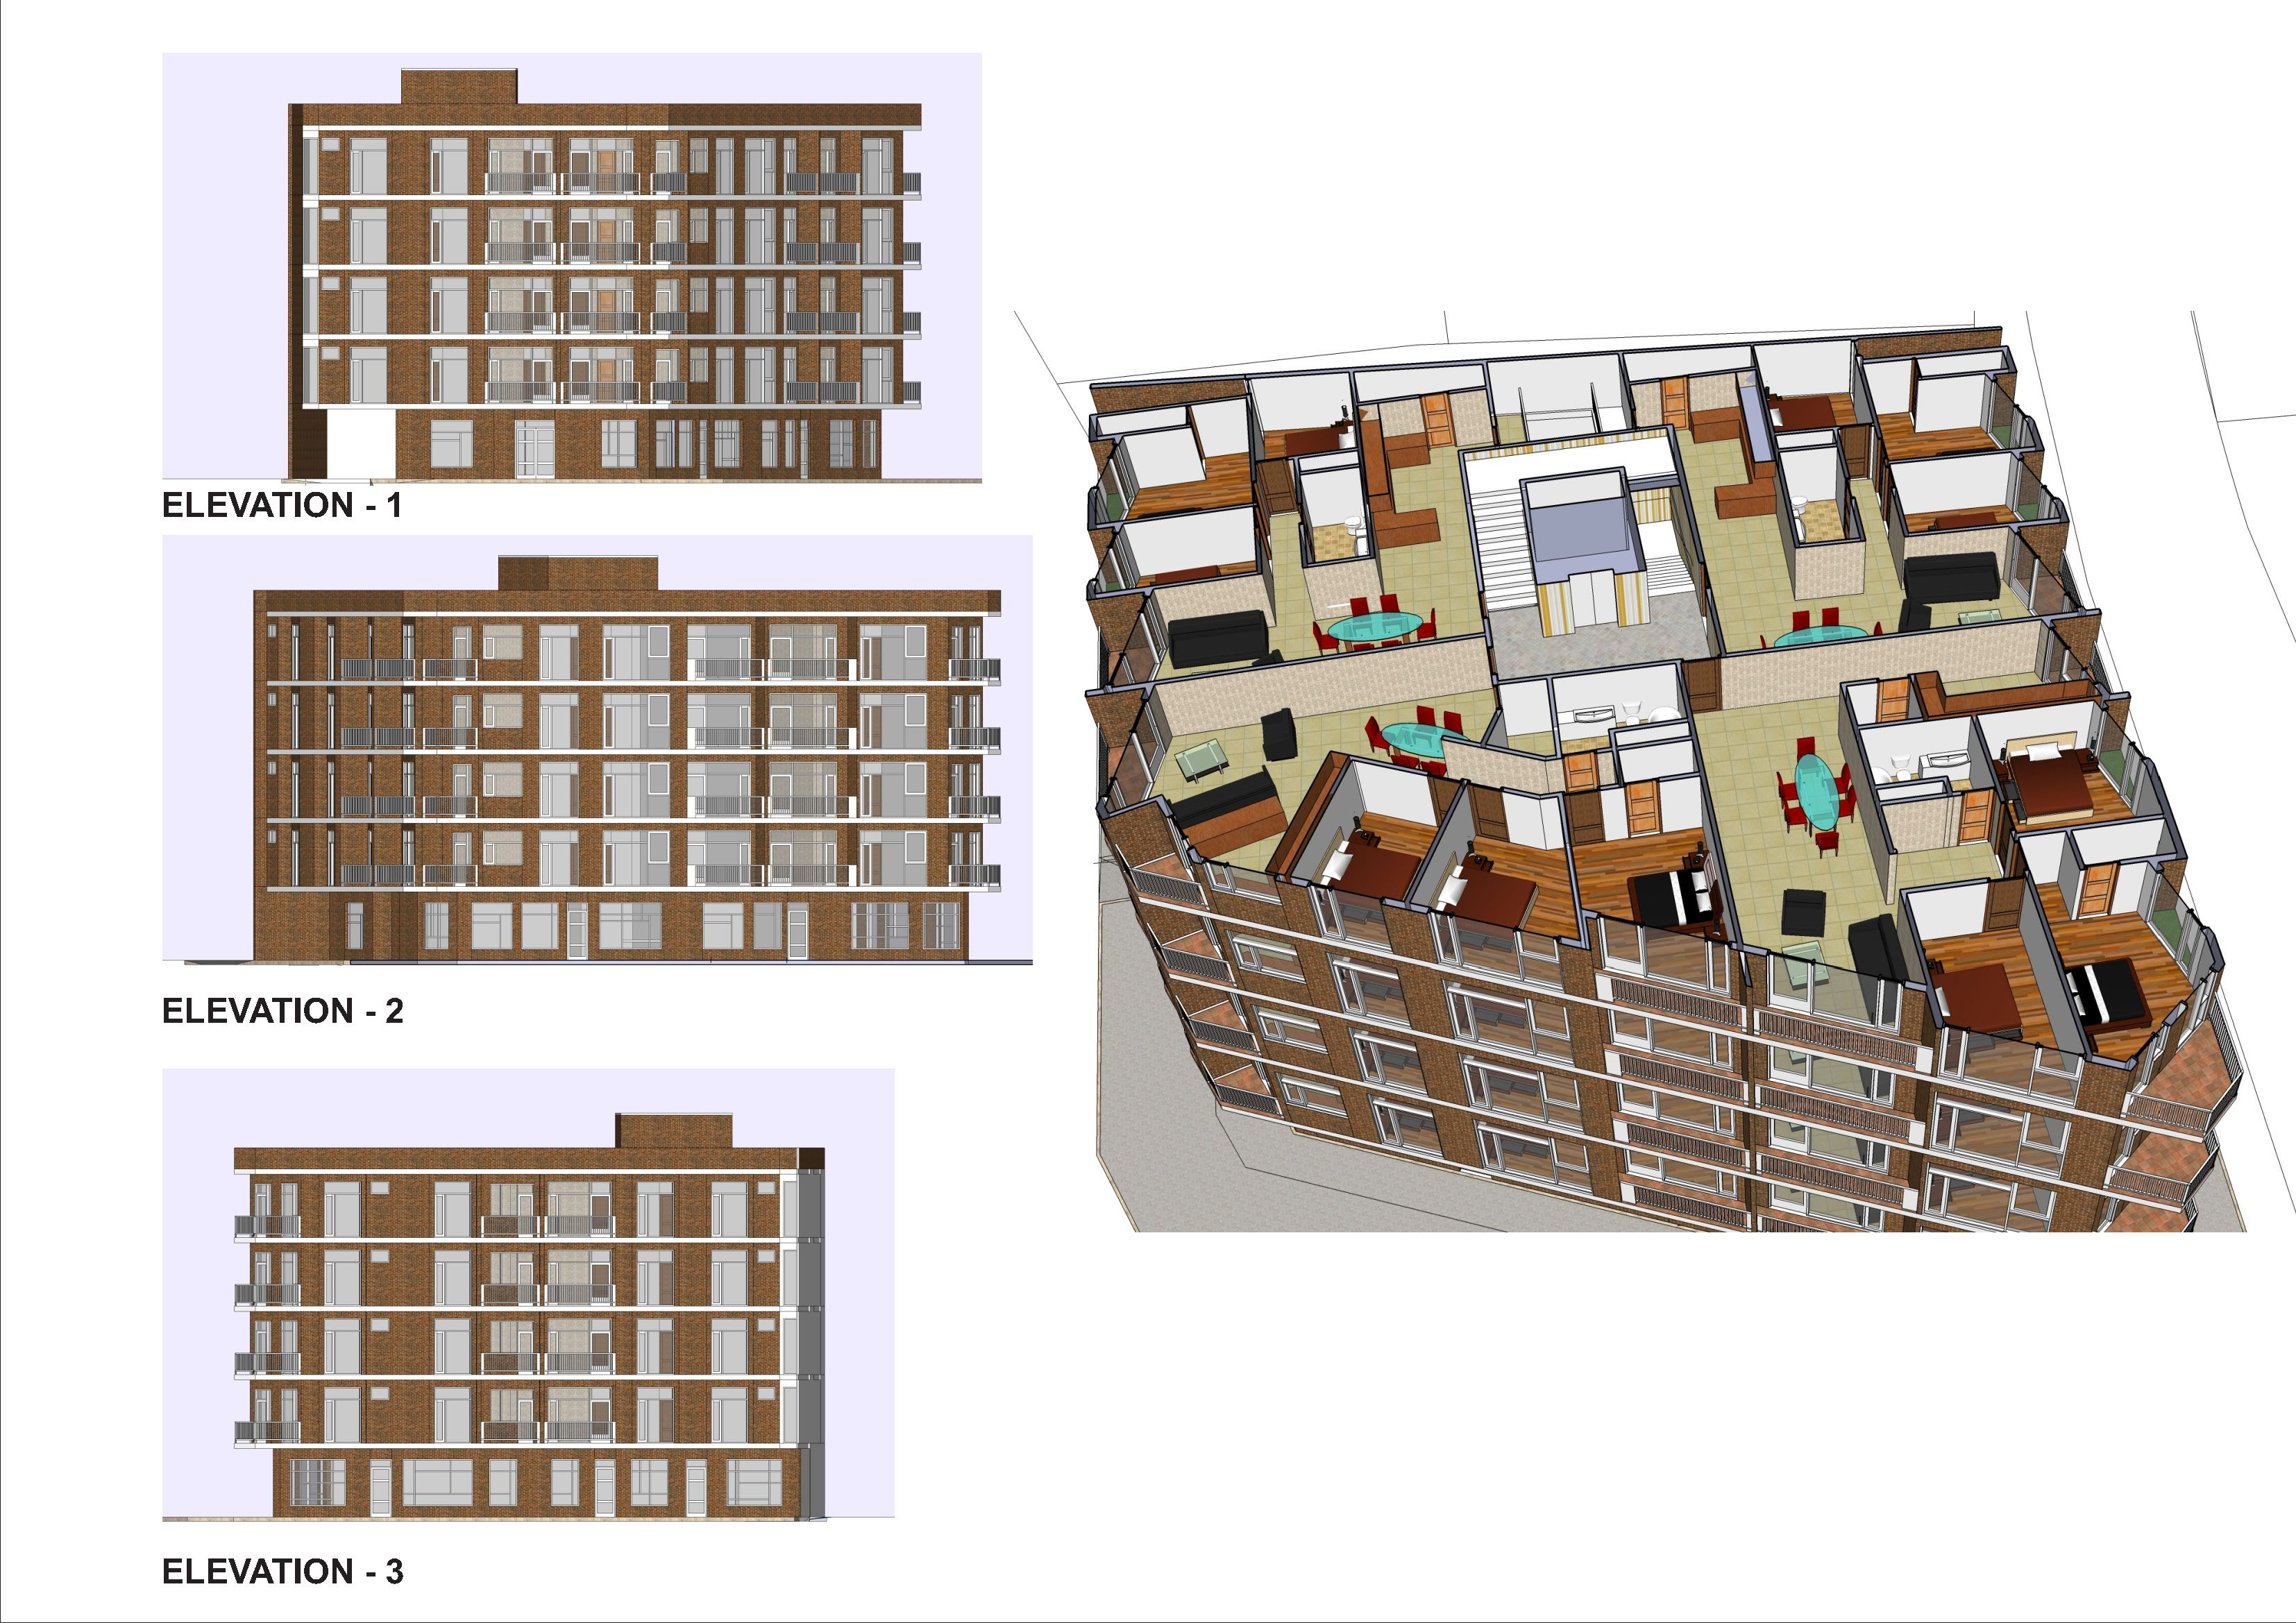 Apartment building plans location aksaray turkey new for Apartment designer program